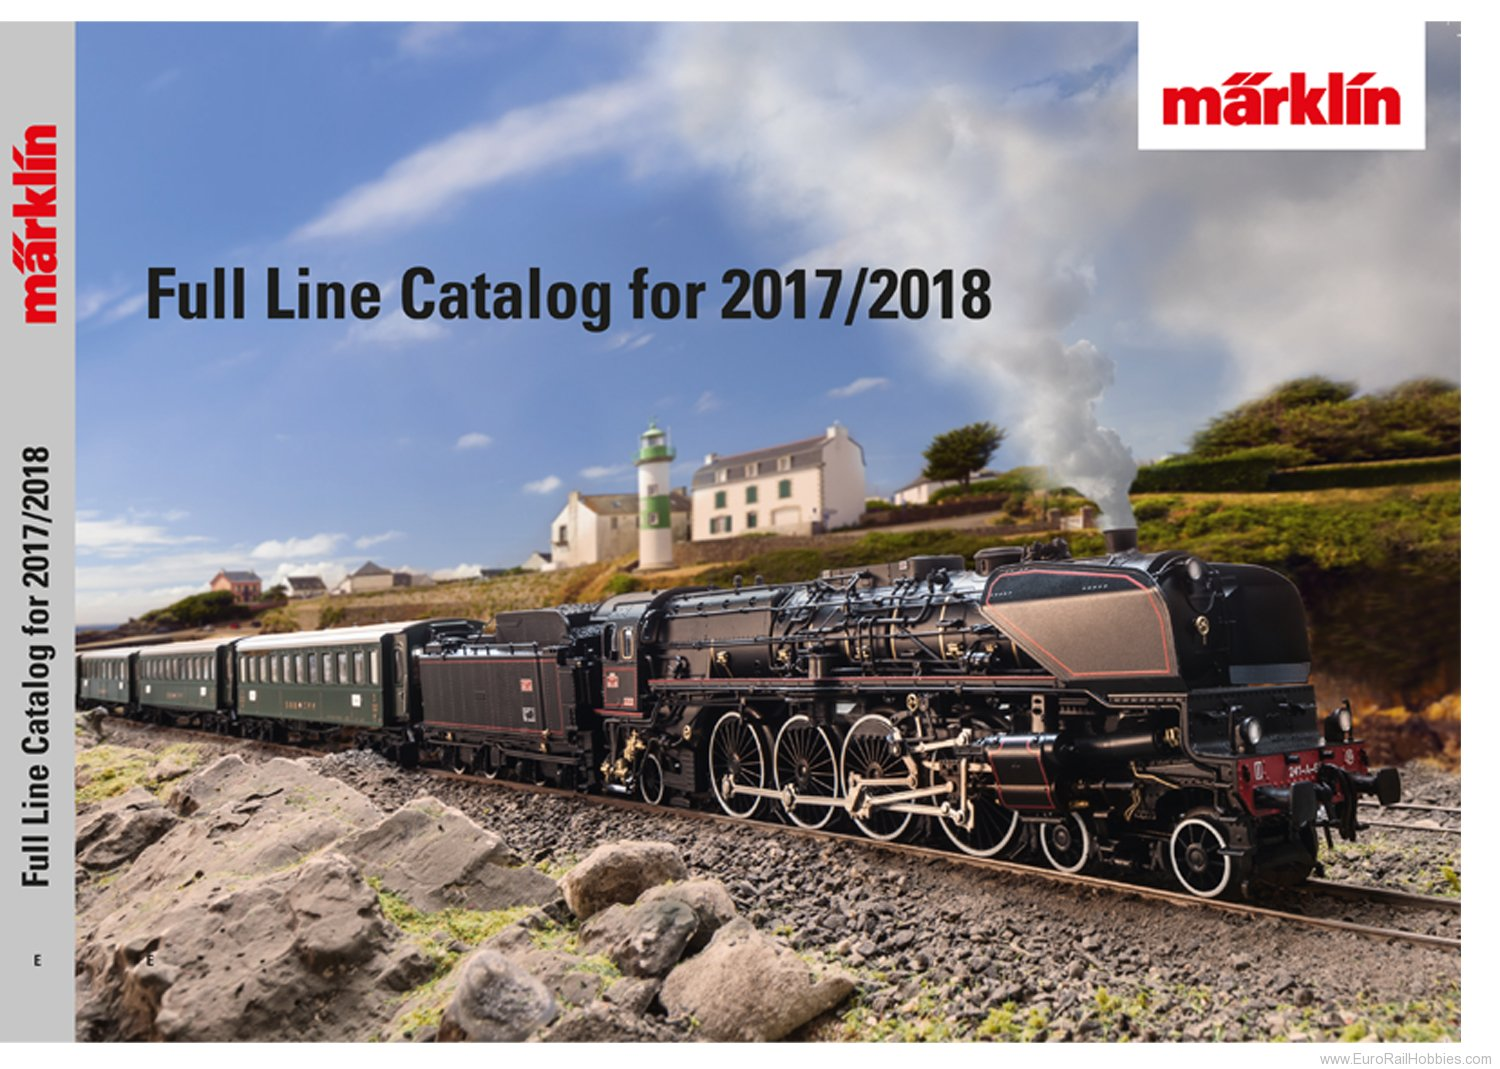 Marklin 15751 Marklin Full Line Catalog 2017/2018 ENGLISH